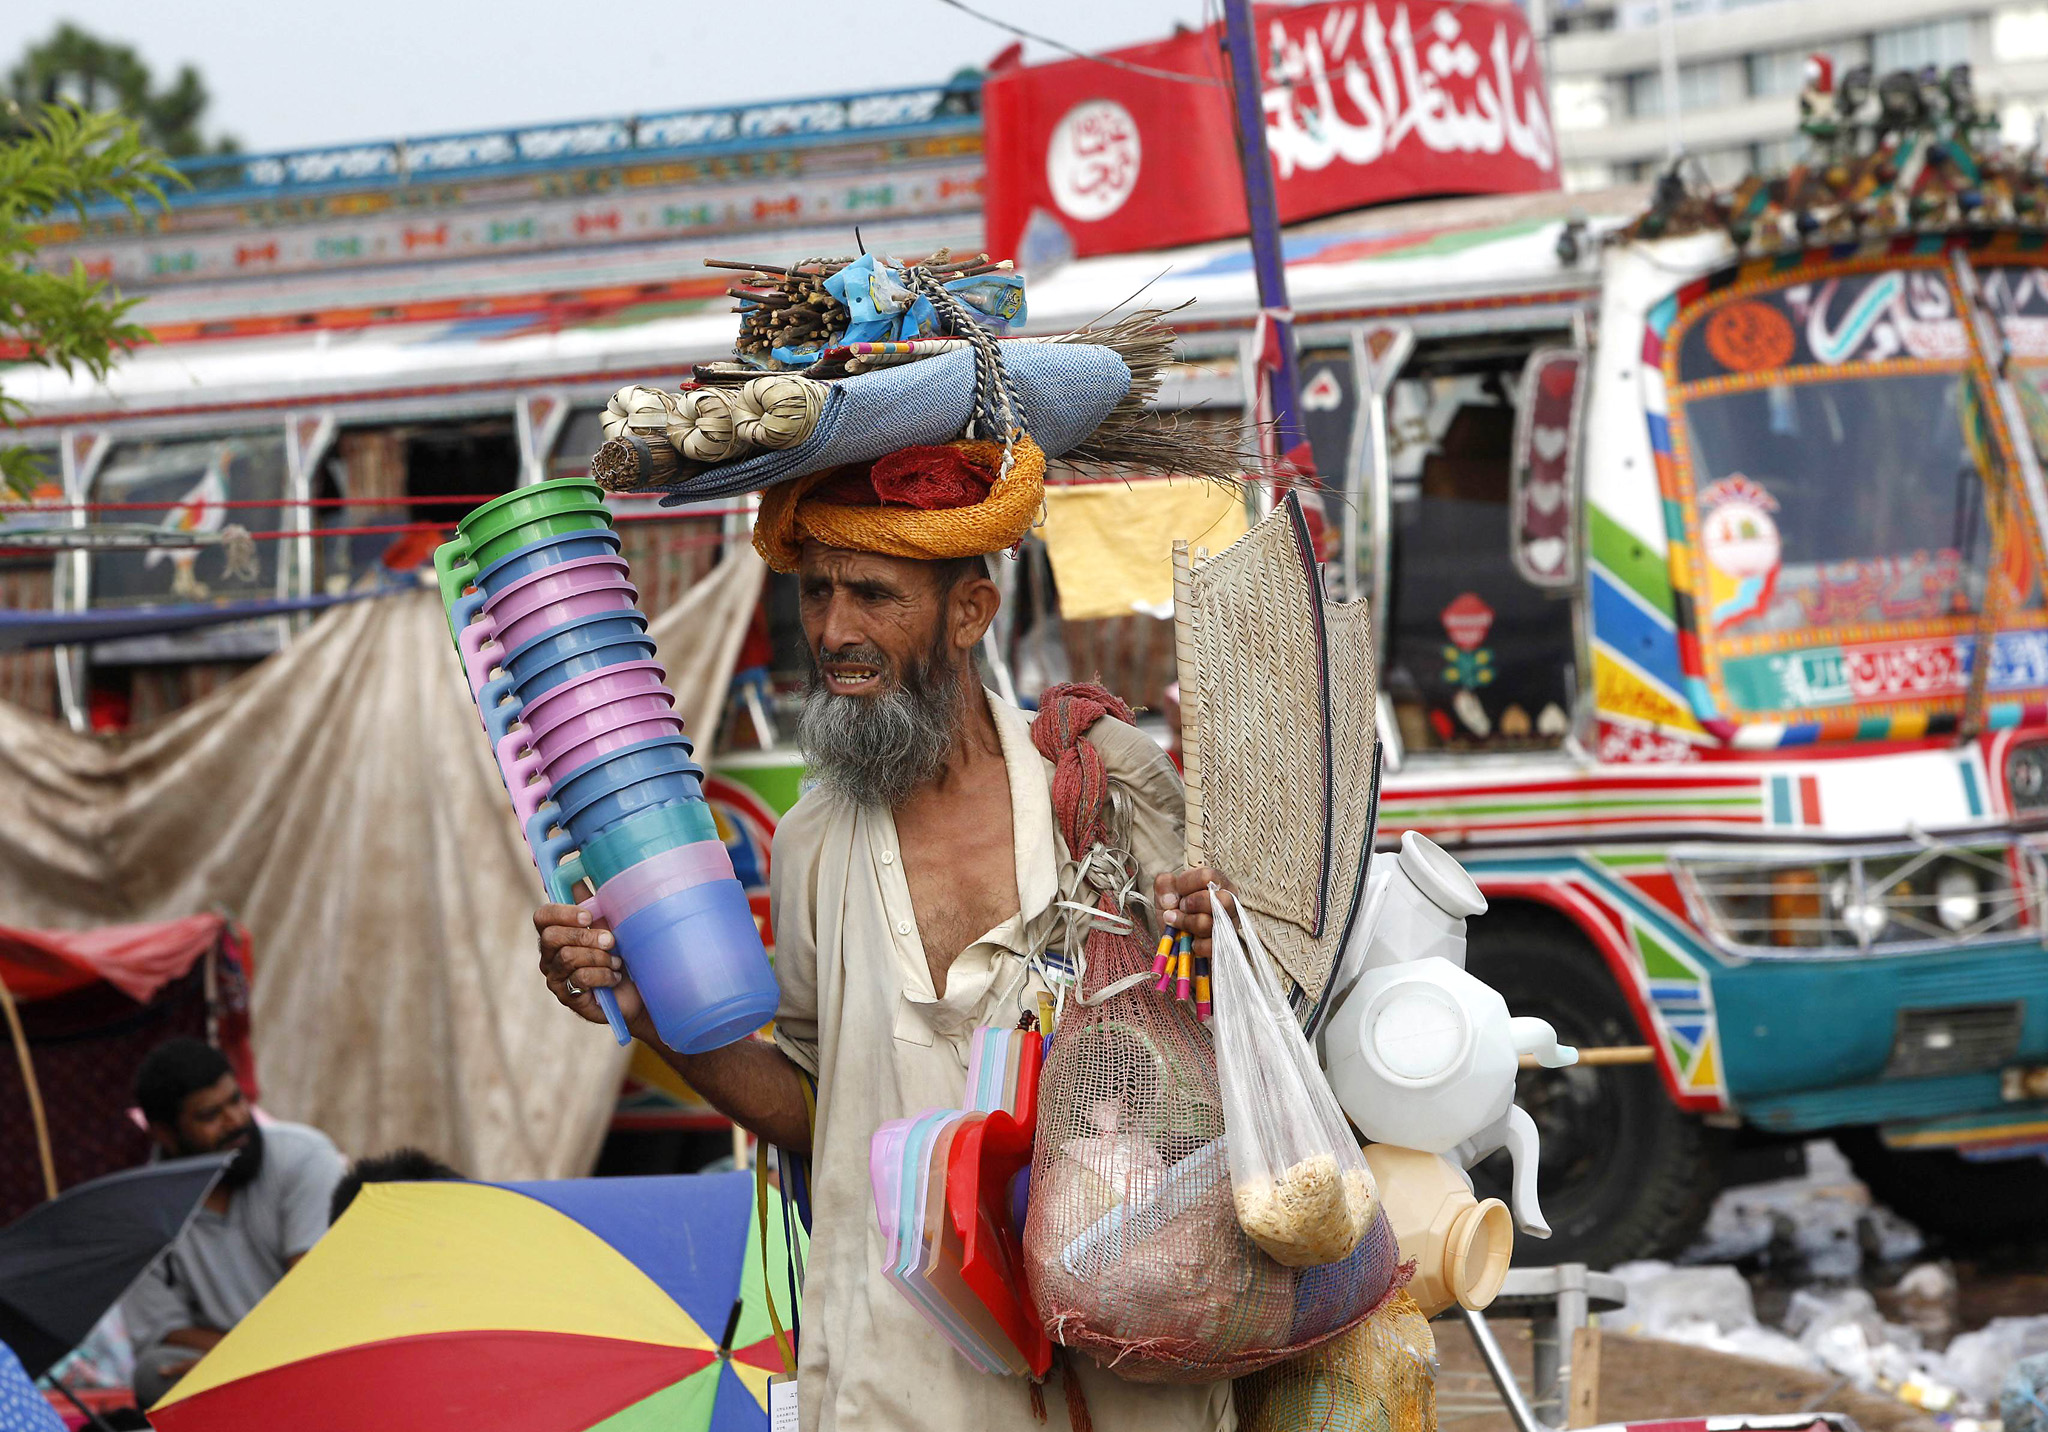 "A man peddles household goods to supporters of Qadri, during the Revolution March in Islamabad...A man peddles household goods to supporters (unseen) of populist cleric Tahir ul-Qadri, leader of political party Pakistan Awami Tehreek (PAT), in front of the Parliament house building during the Revolution March in Islamabad August 27, 2014. Thousands of protesters, led by opposition leader Imran Khan and Qadri, are now camped out in the heart of Islamabad - the so-called ""Red Zone"".  REUTERS/Akhtar Soomro (PAKISTAN - Tags: POLITICS CIVIL UNREST)"